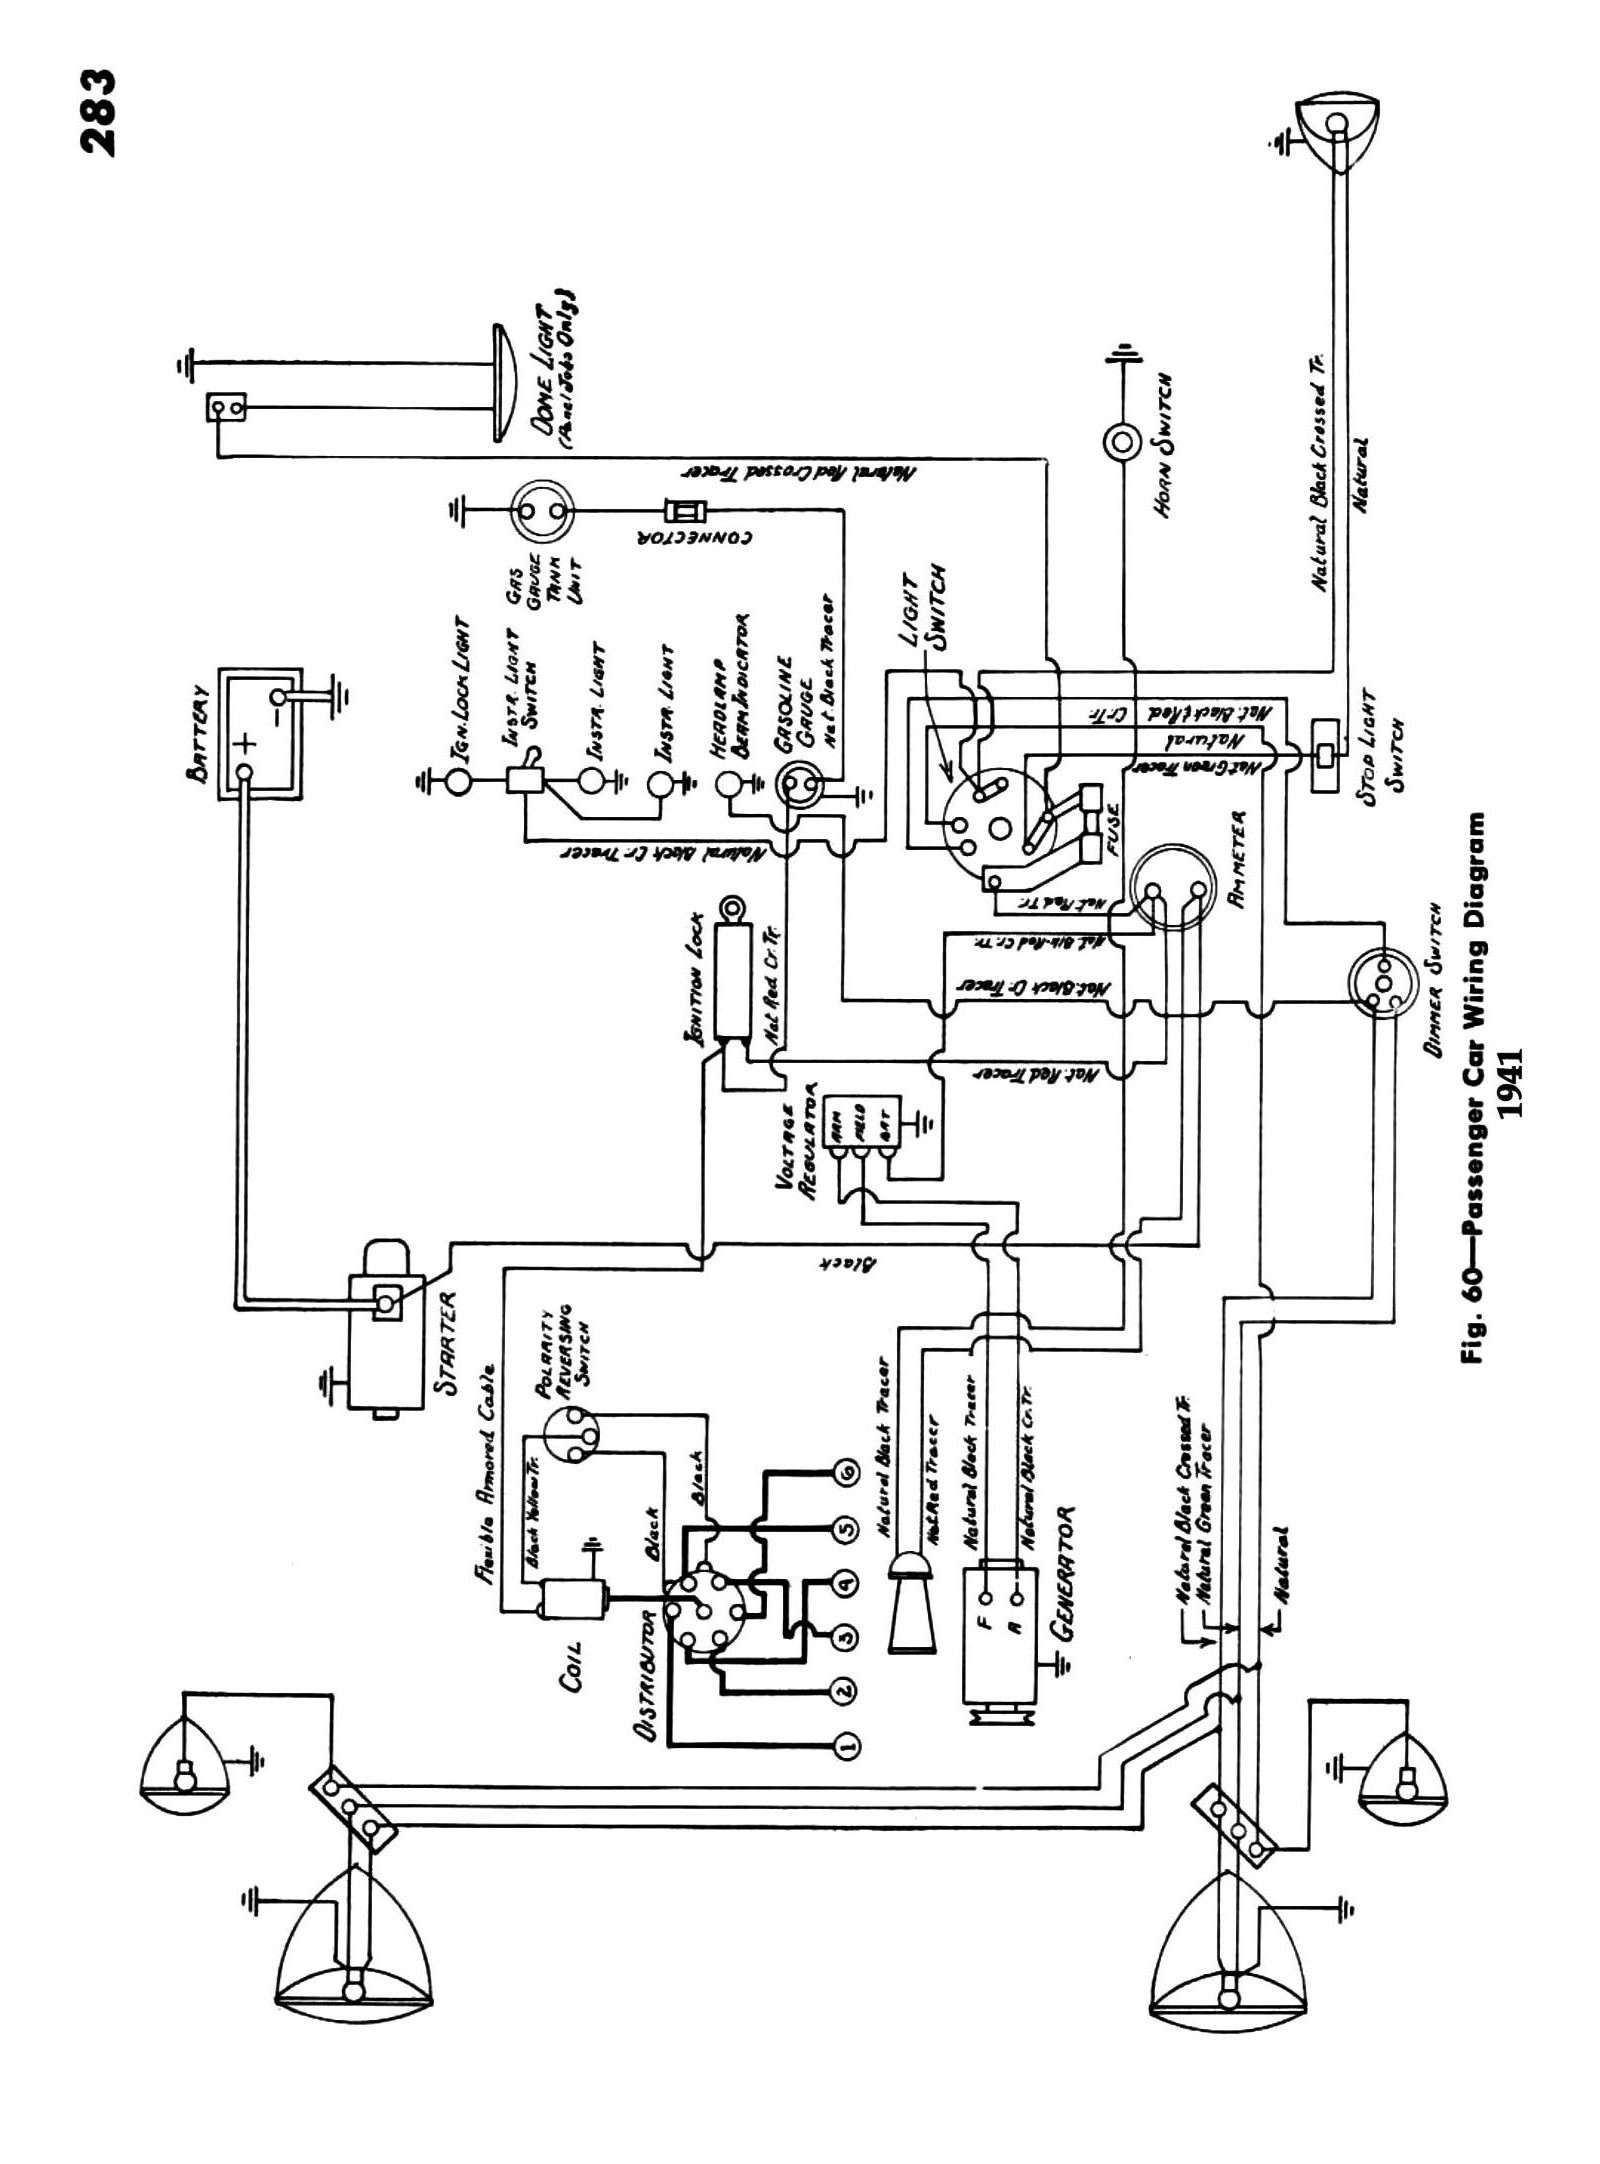 Wiring Diagram Cars Trucks Wiring Diagram Cars Trucks Truck Horn Wiring Wiring Diagrams 57 Chevy Trucks 1946 Chevy Truck Chevy Trucks